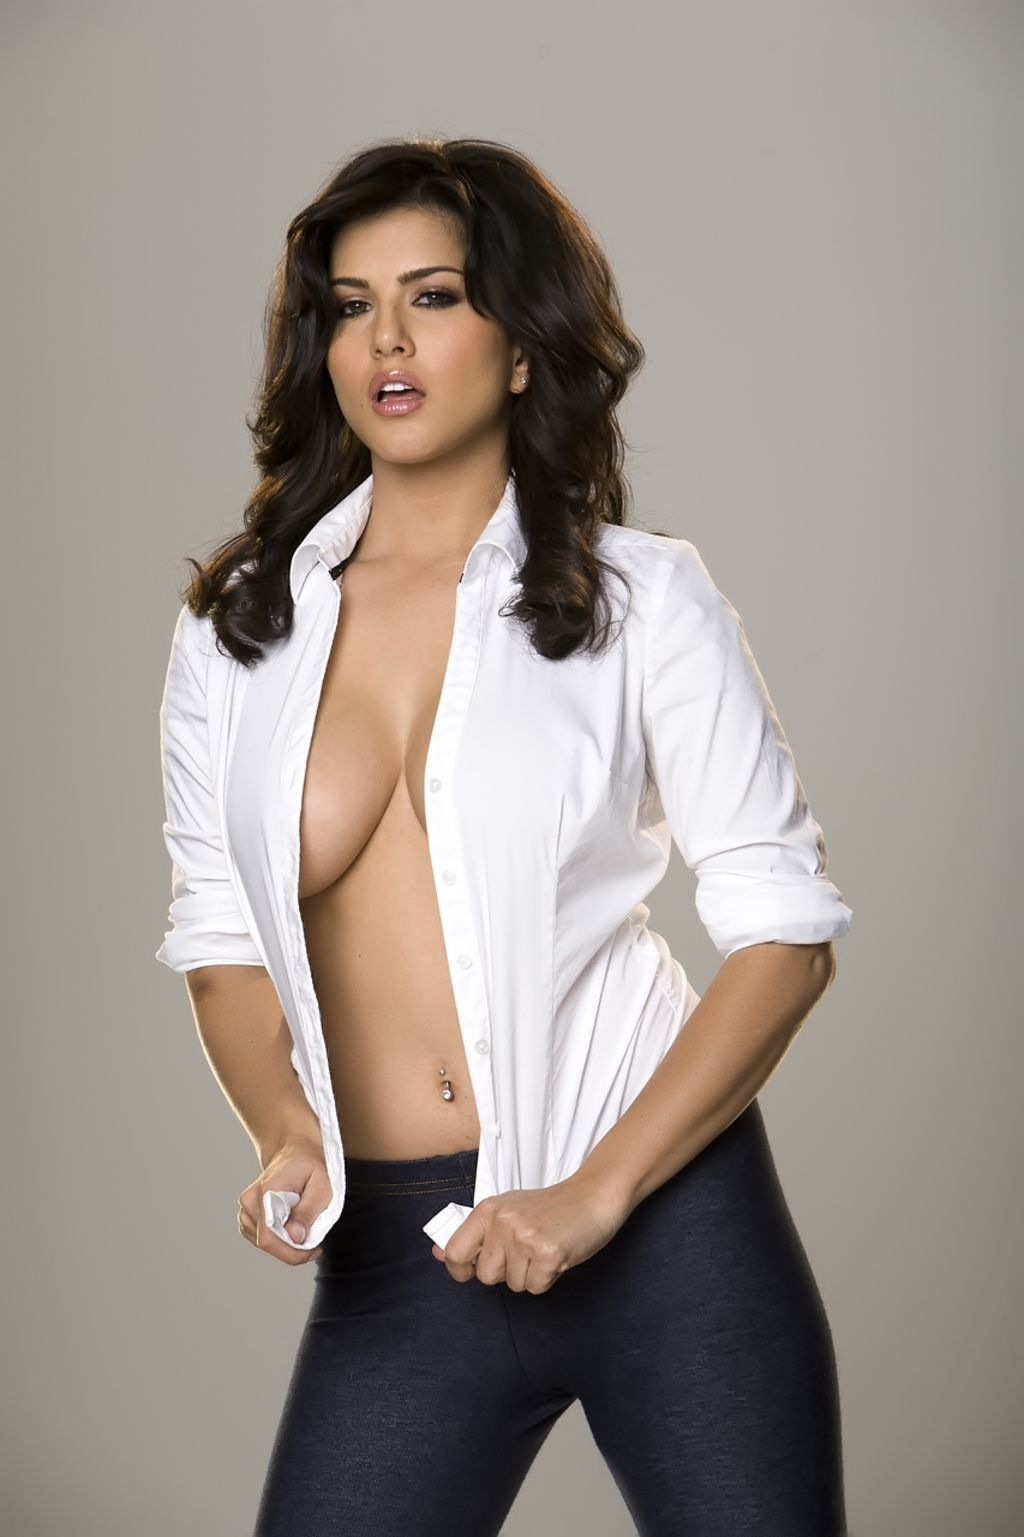 Are absolutely sunny leone white shirt